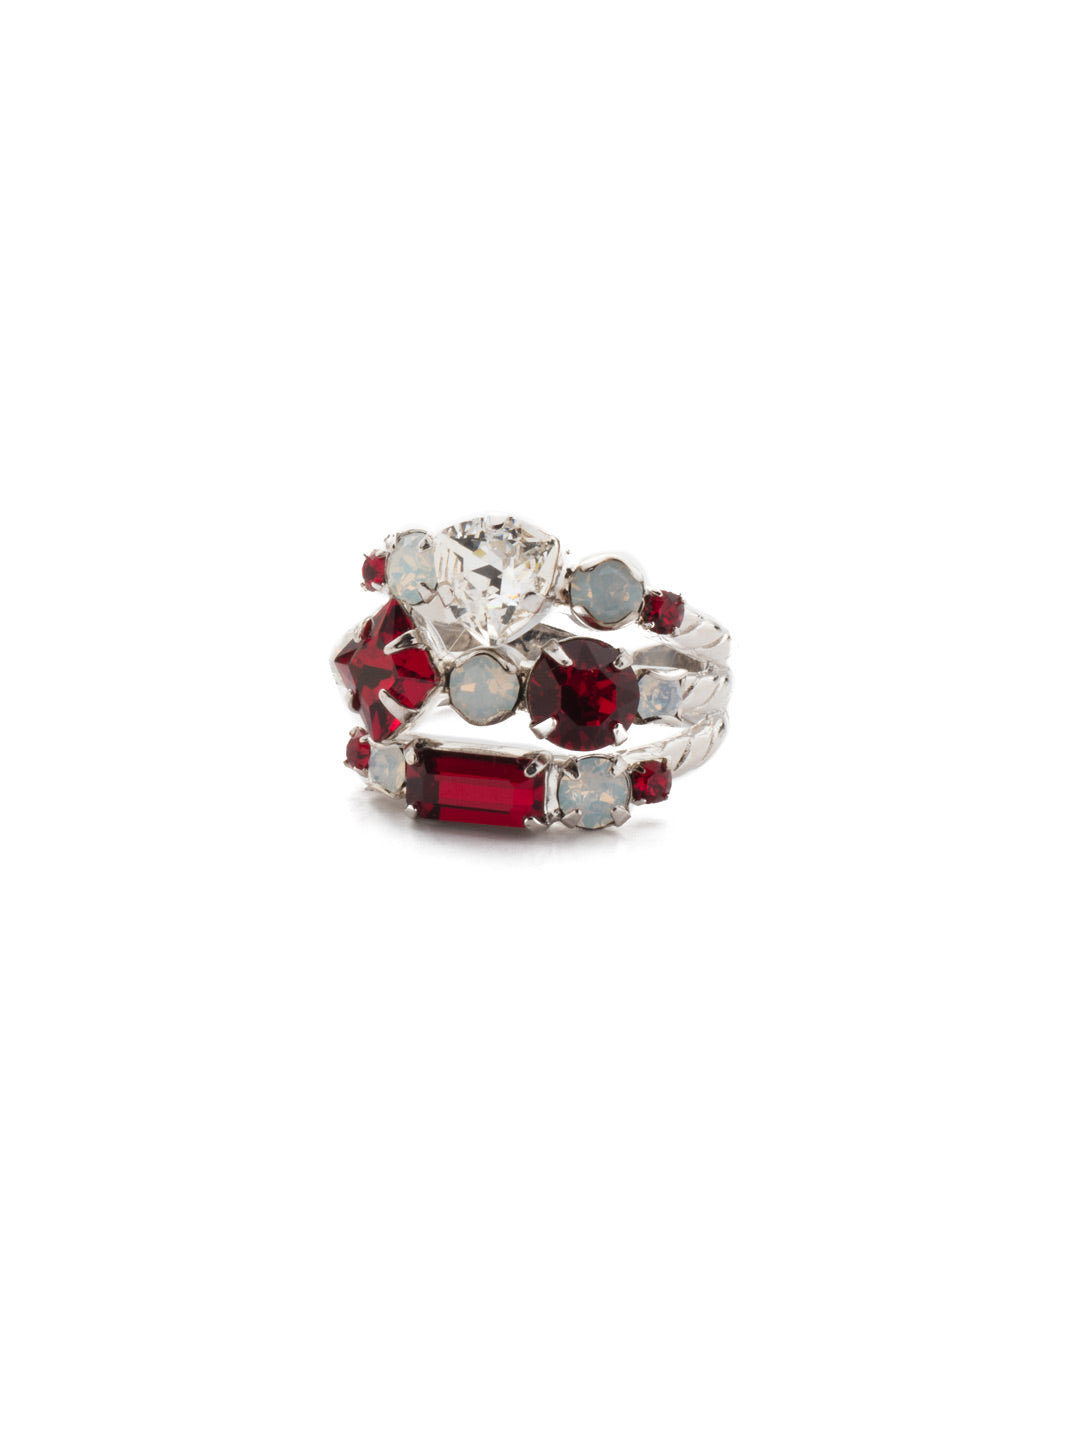 Sedge Stacked Stacked Ring - RDX1RHCP